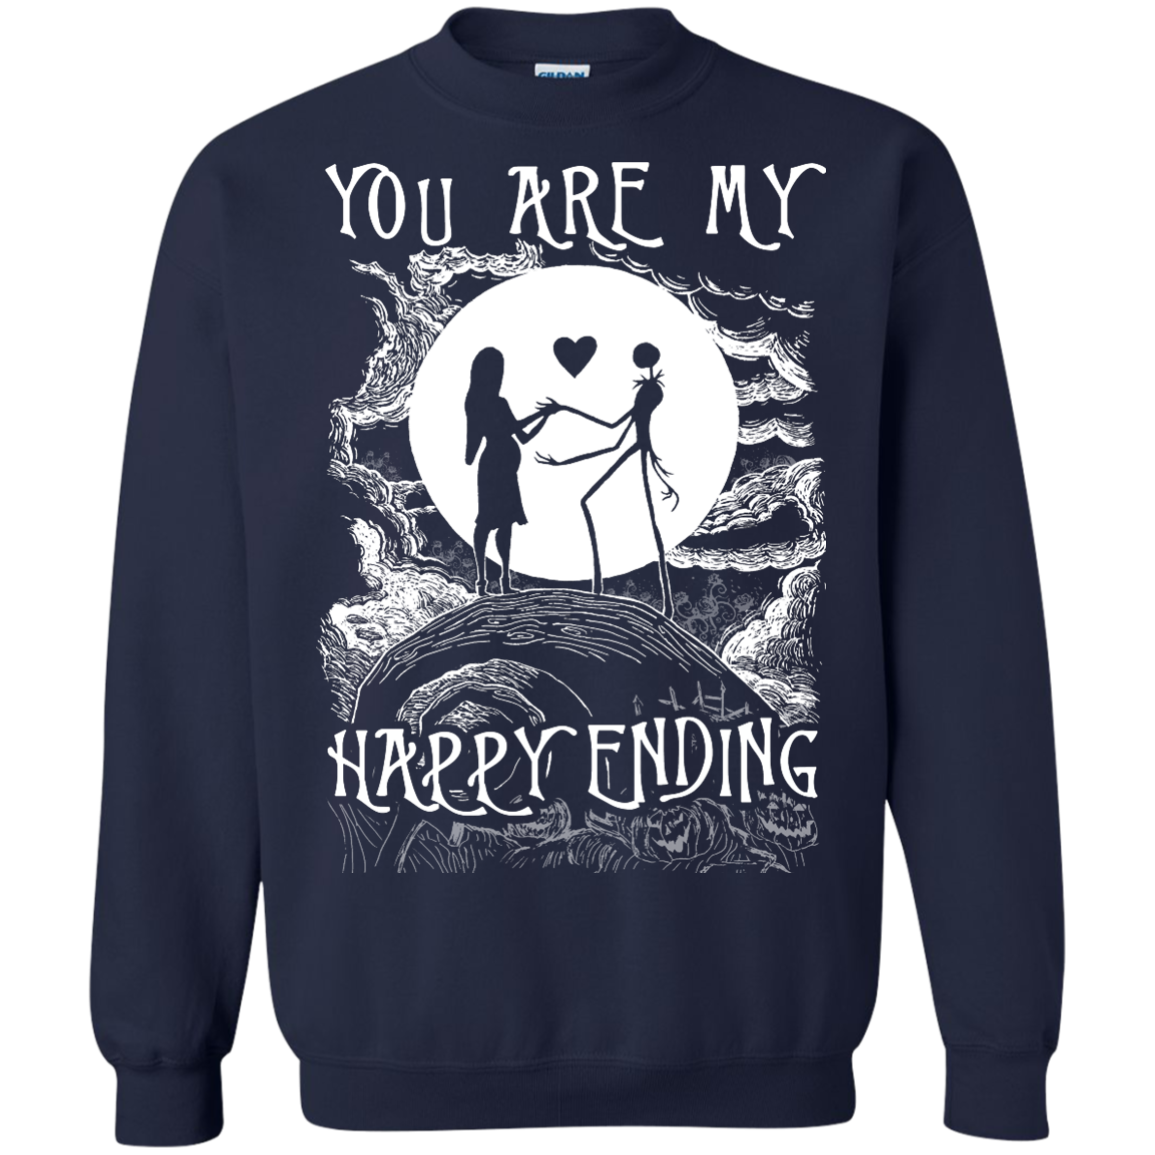 You are my happy ending - Nightmare Before Christmas